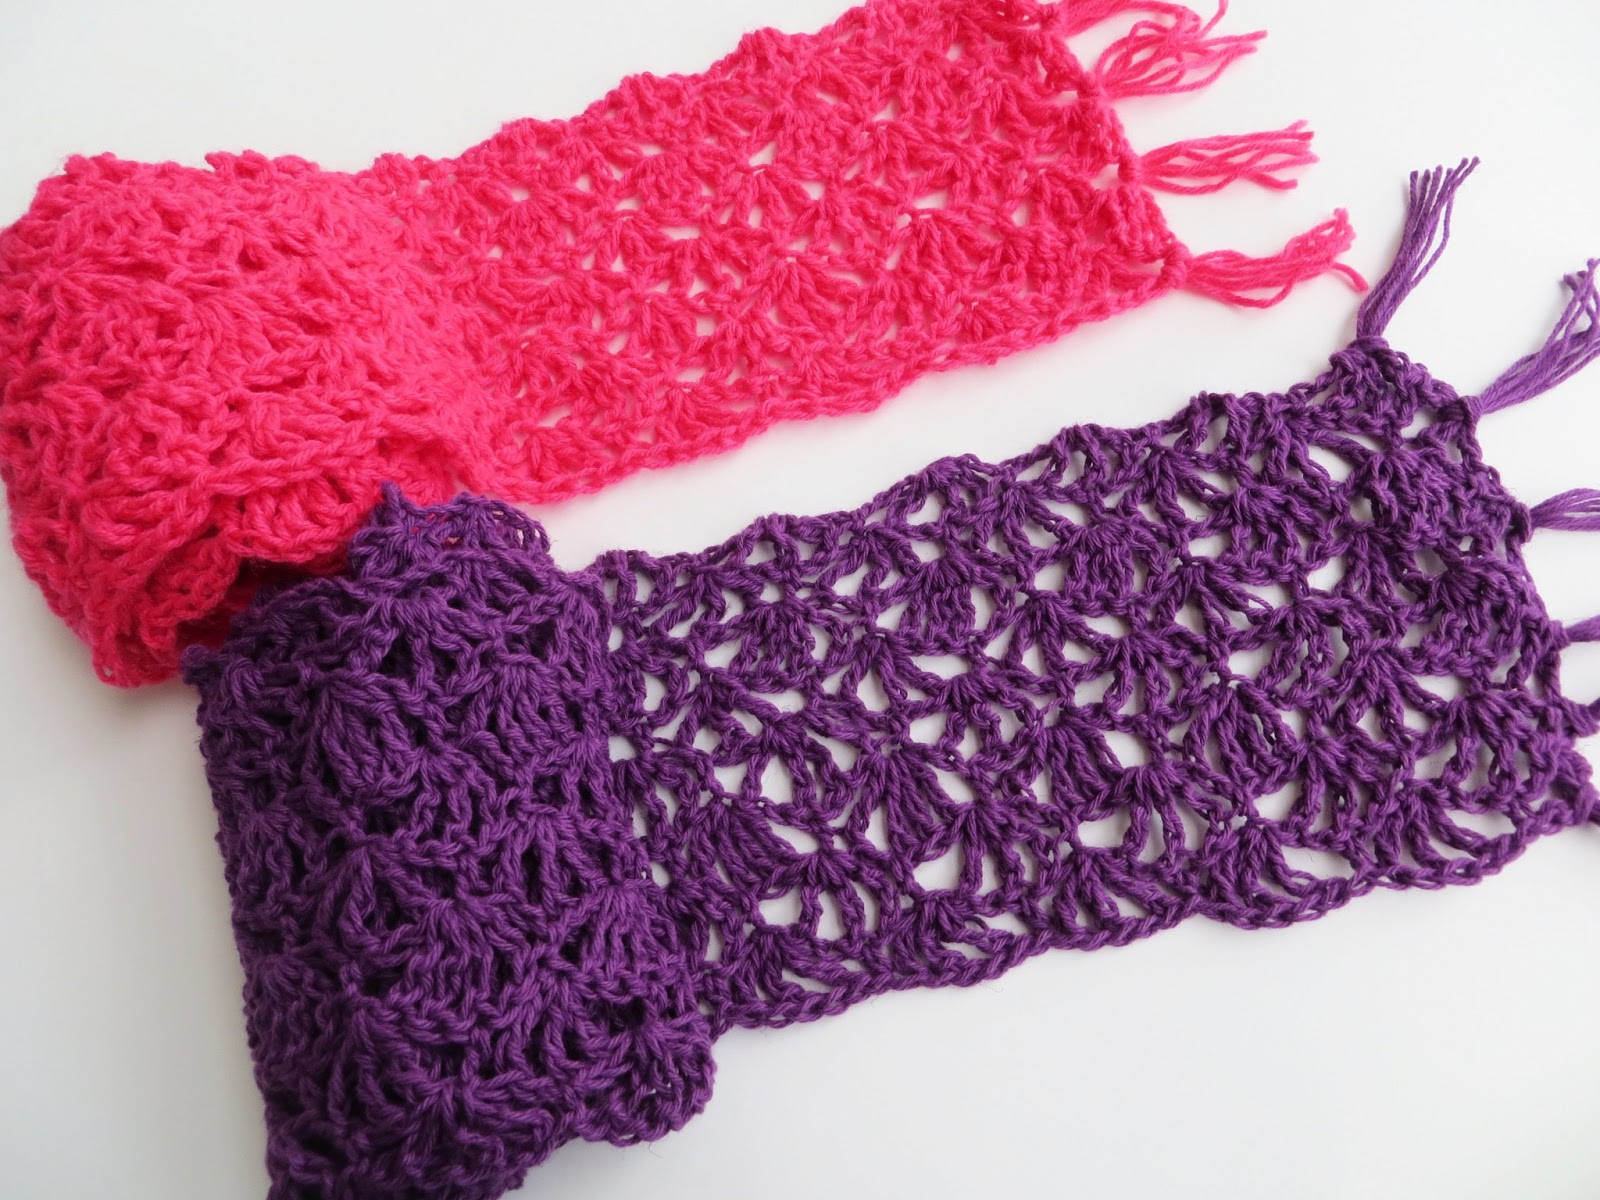 Simple Crochet Patterns : Crochet Dreamz: Alana Lacy Scarf, Free Crochet Pattern